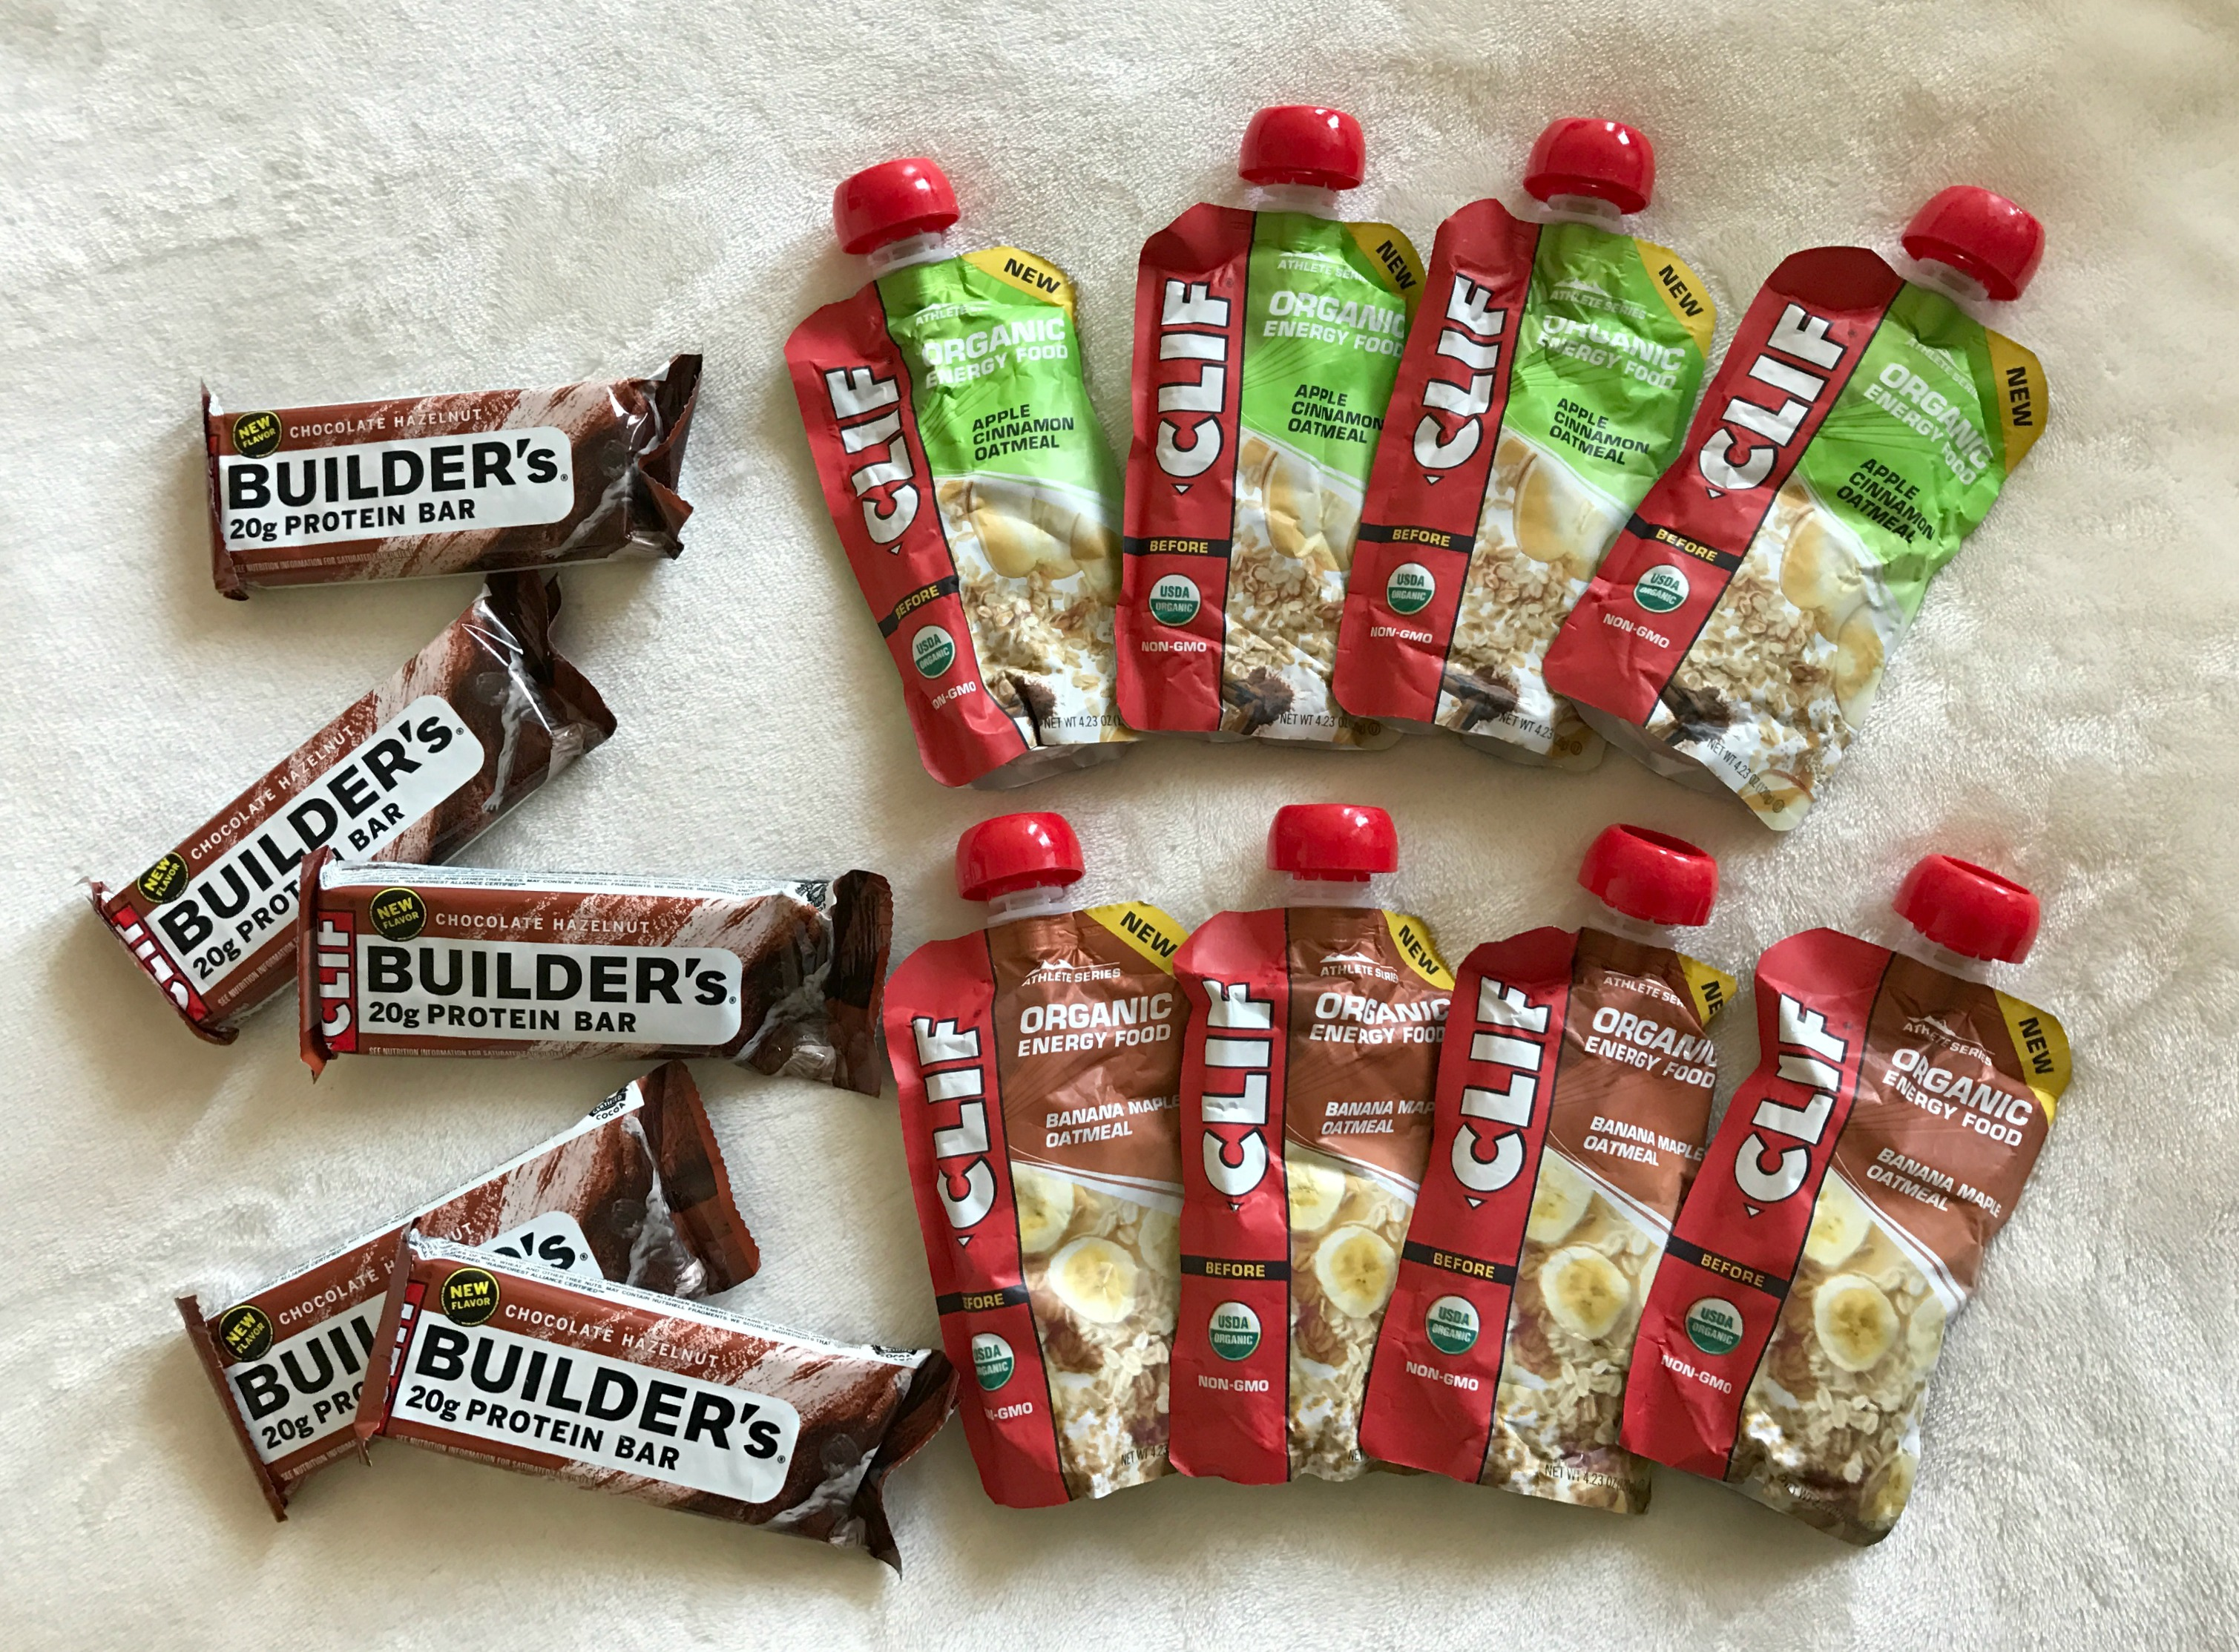 clif-bar-builders-protein-bar-and-organic-energy-food